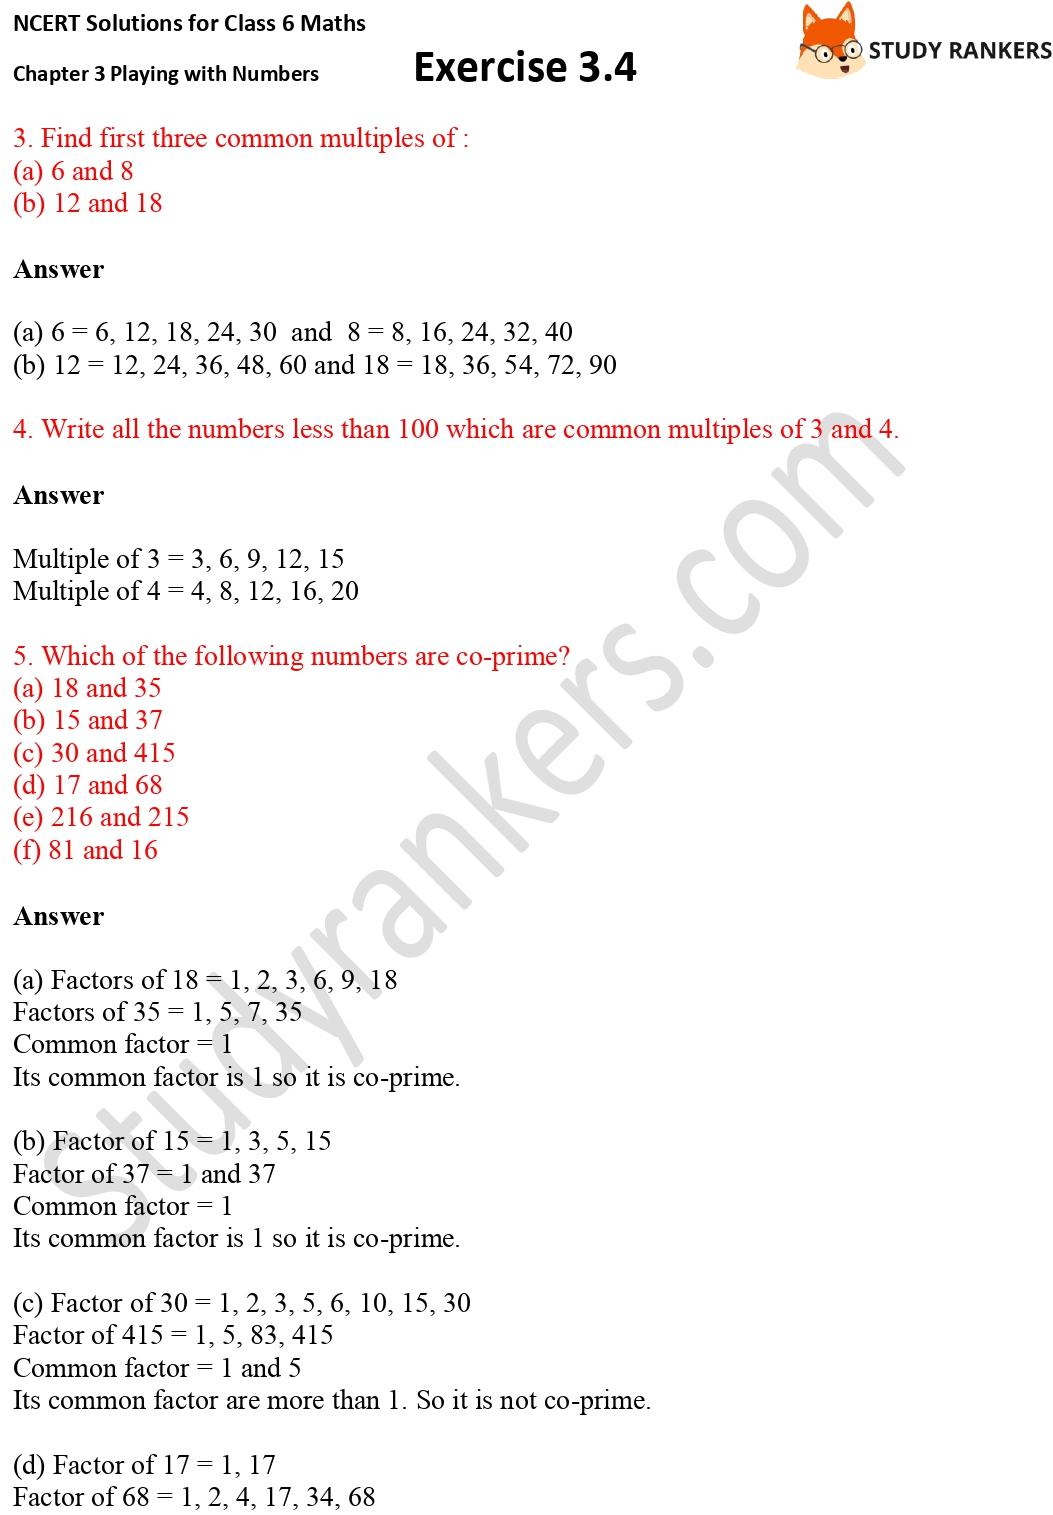 NCERT Solutions for Class 6 Maths Chapter 3 Playing with Numbers Exercise 3.4 Part 2